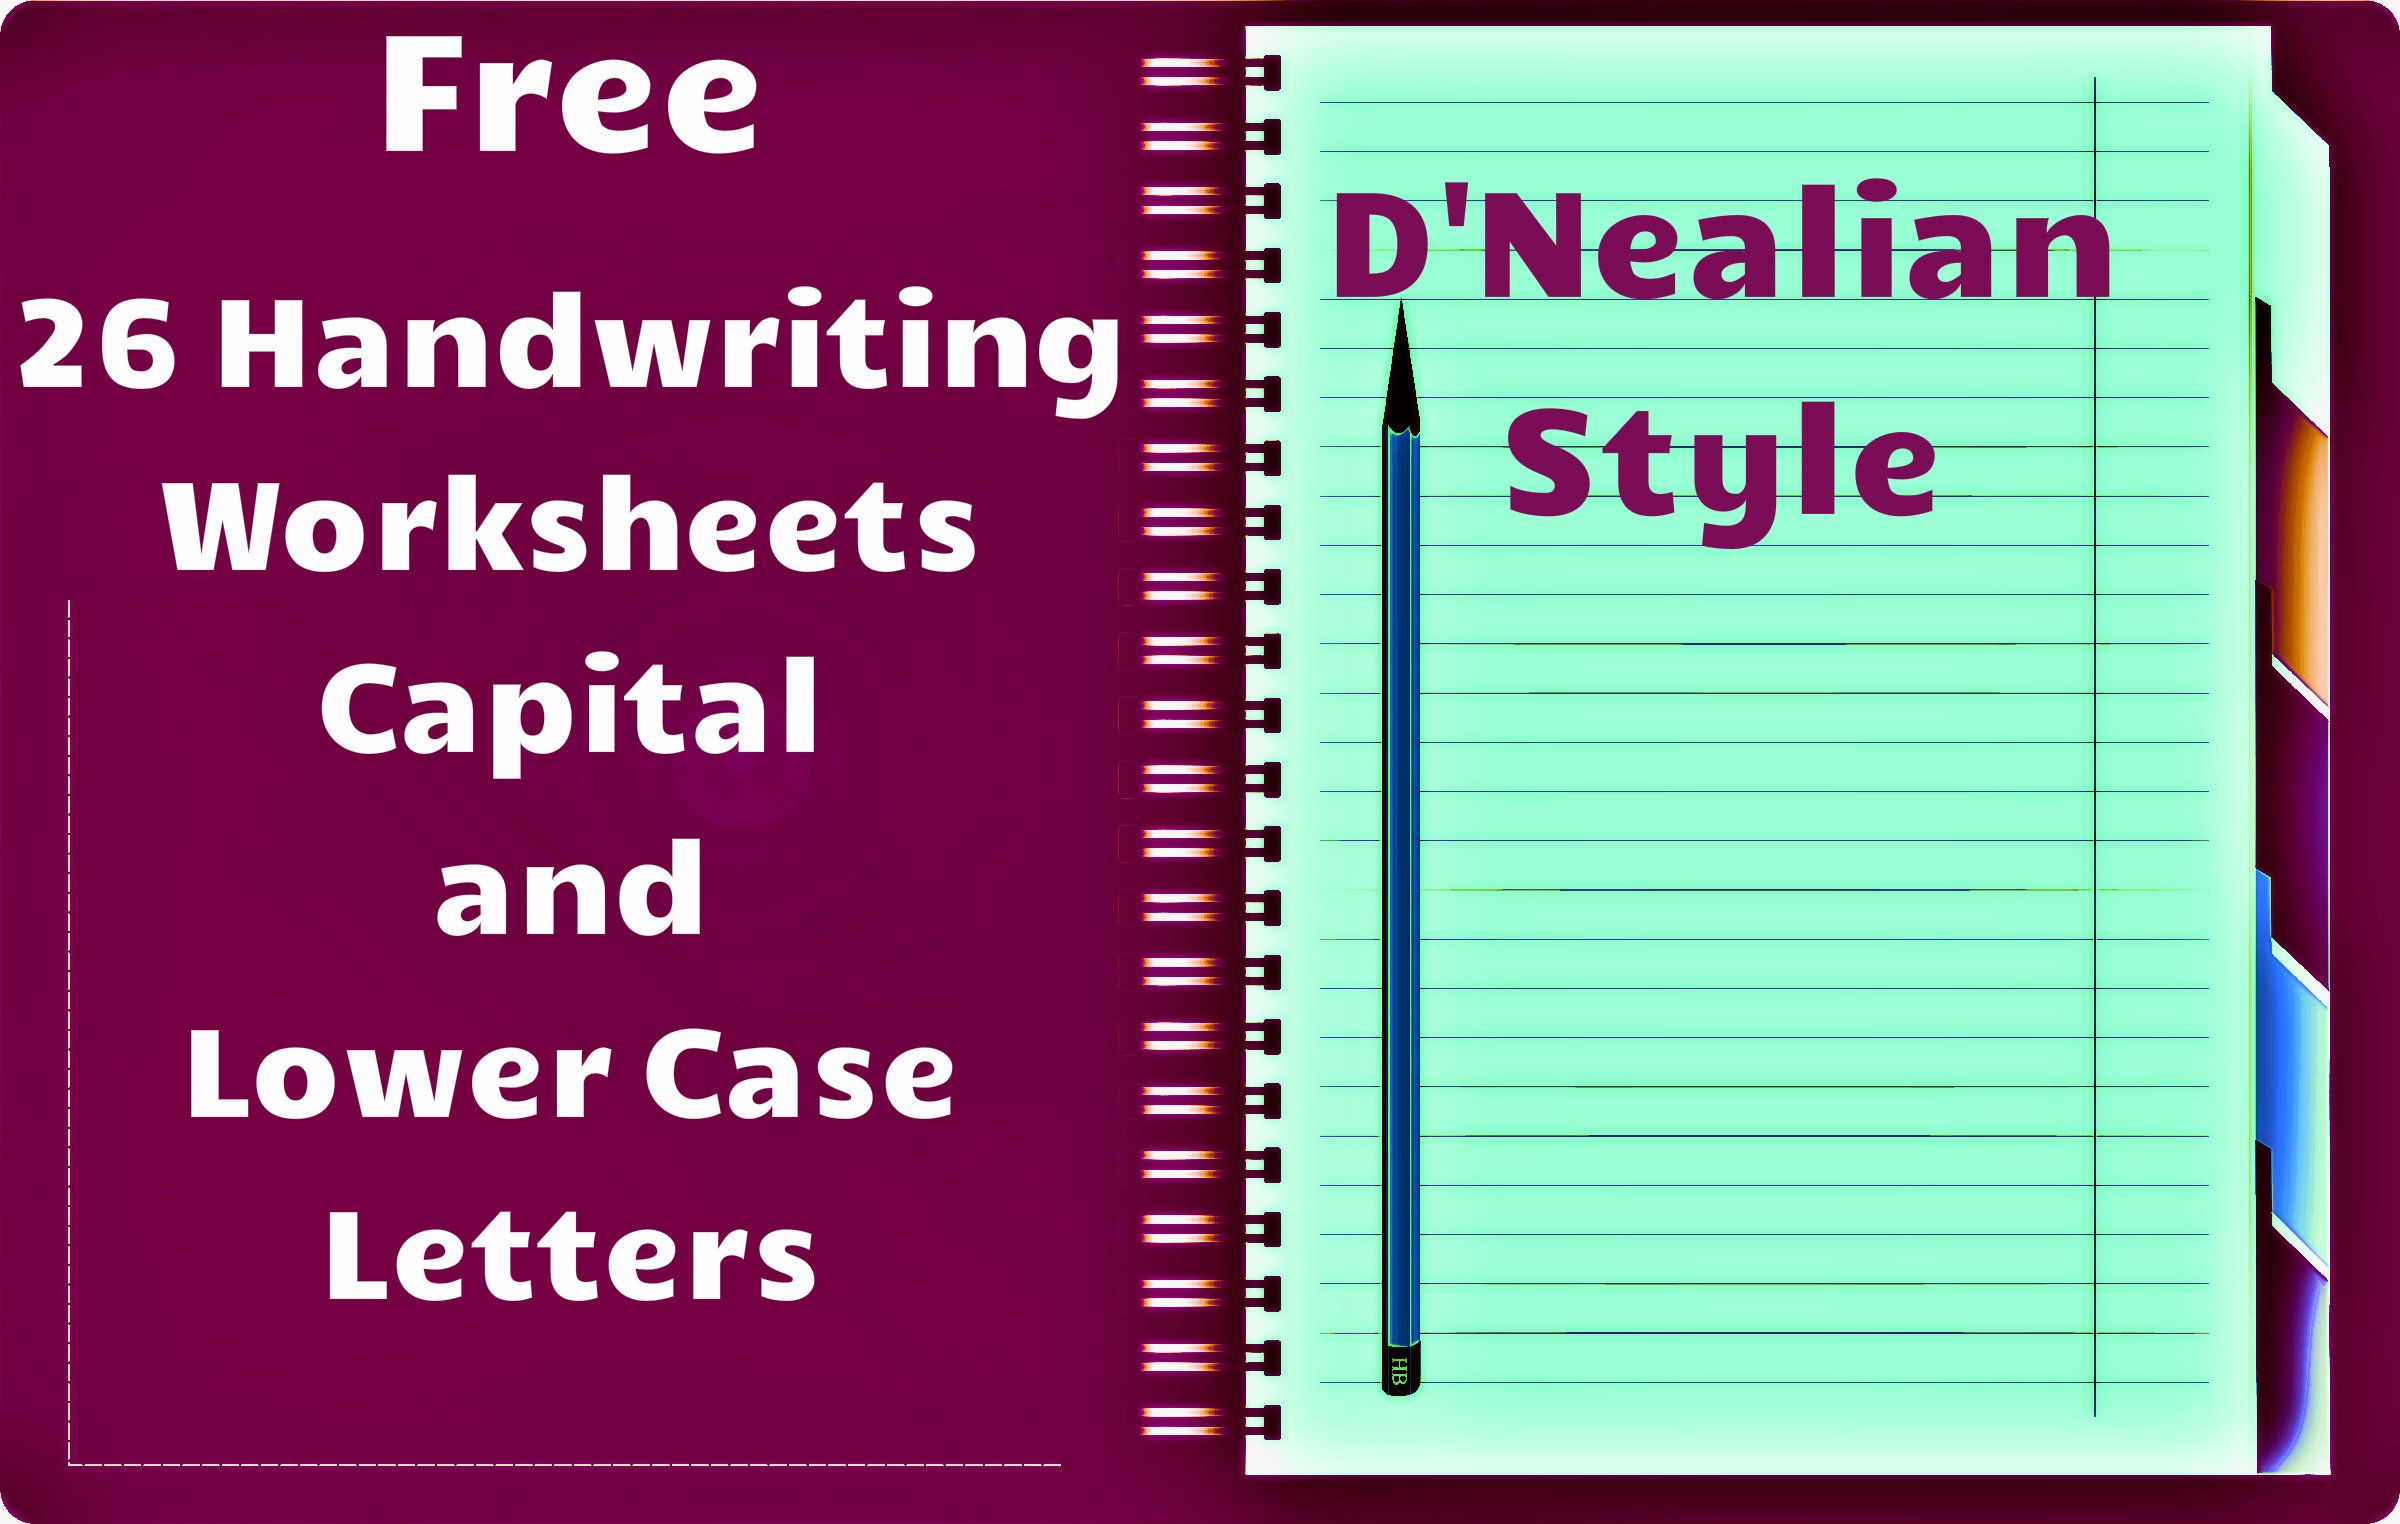 Printables D Nealian Handwriting Practice Worksheets 1000 images about dnealian handwriting on pinterest hand writing alphabet tracing worksheets and practice work